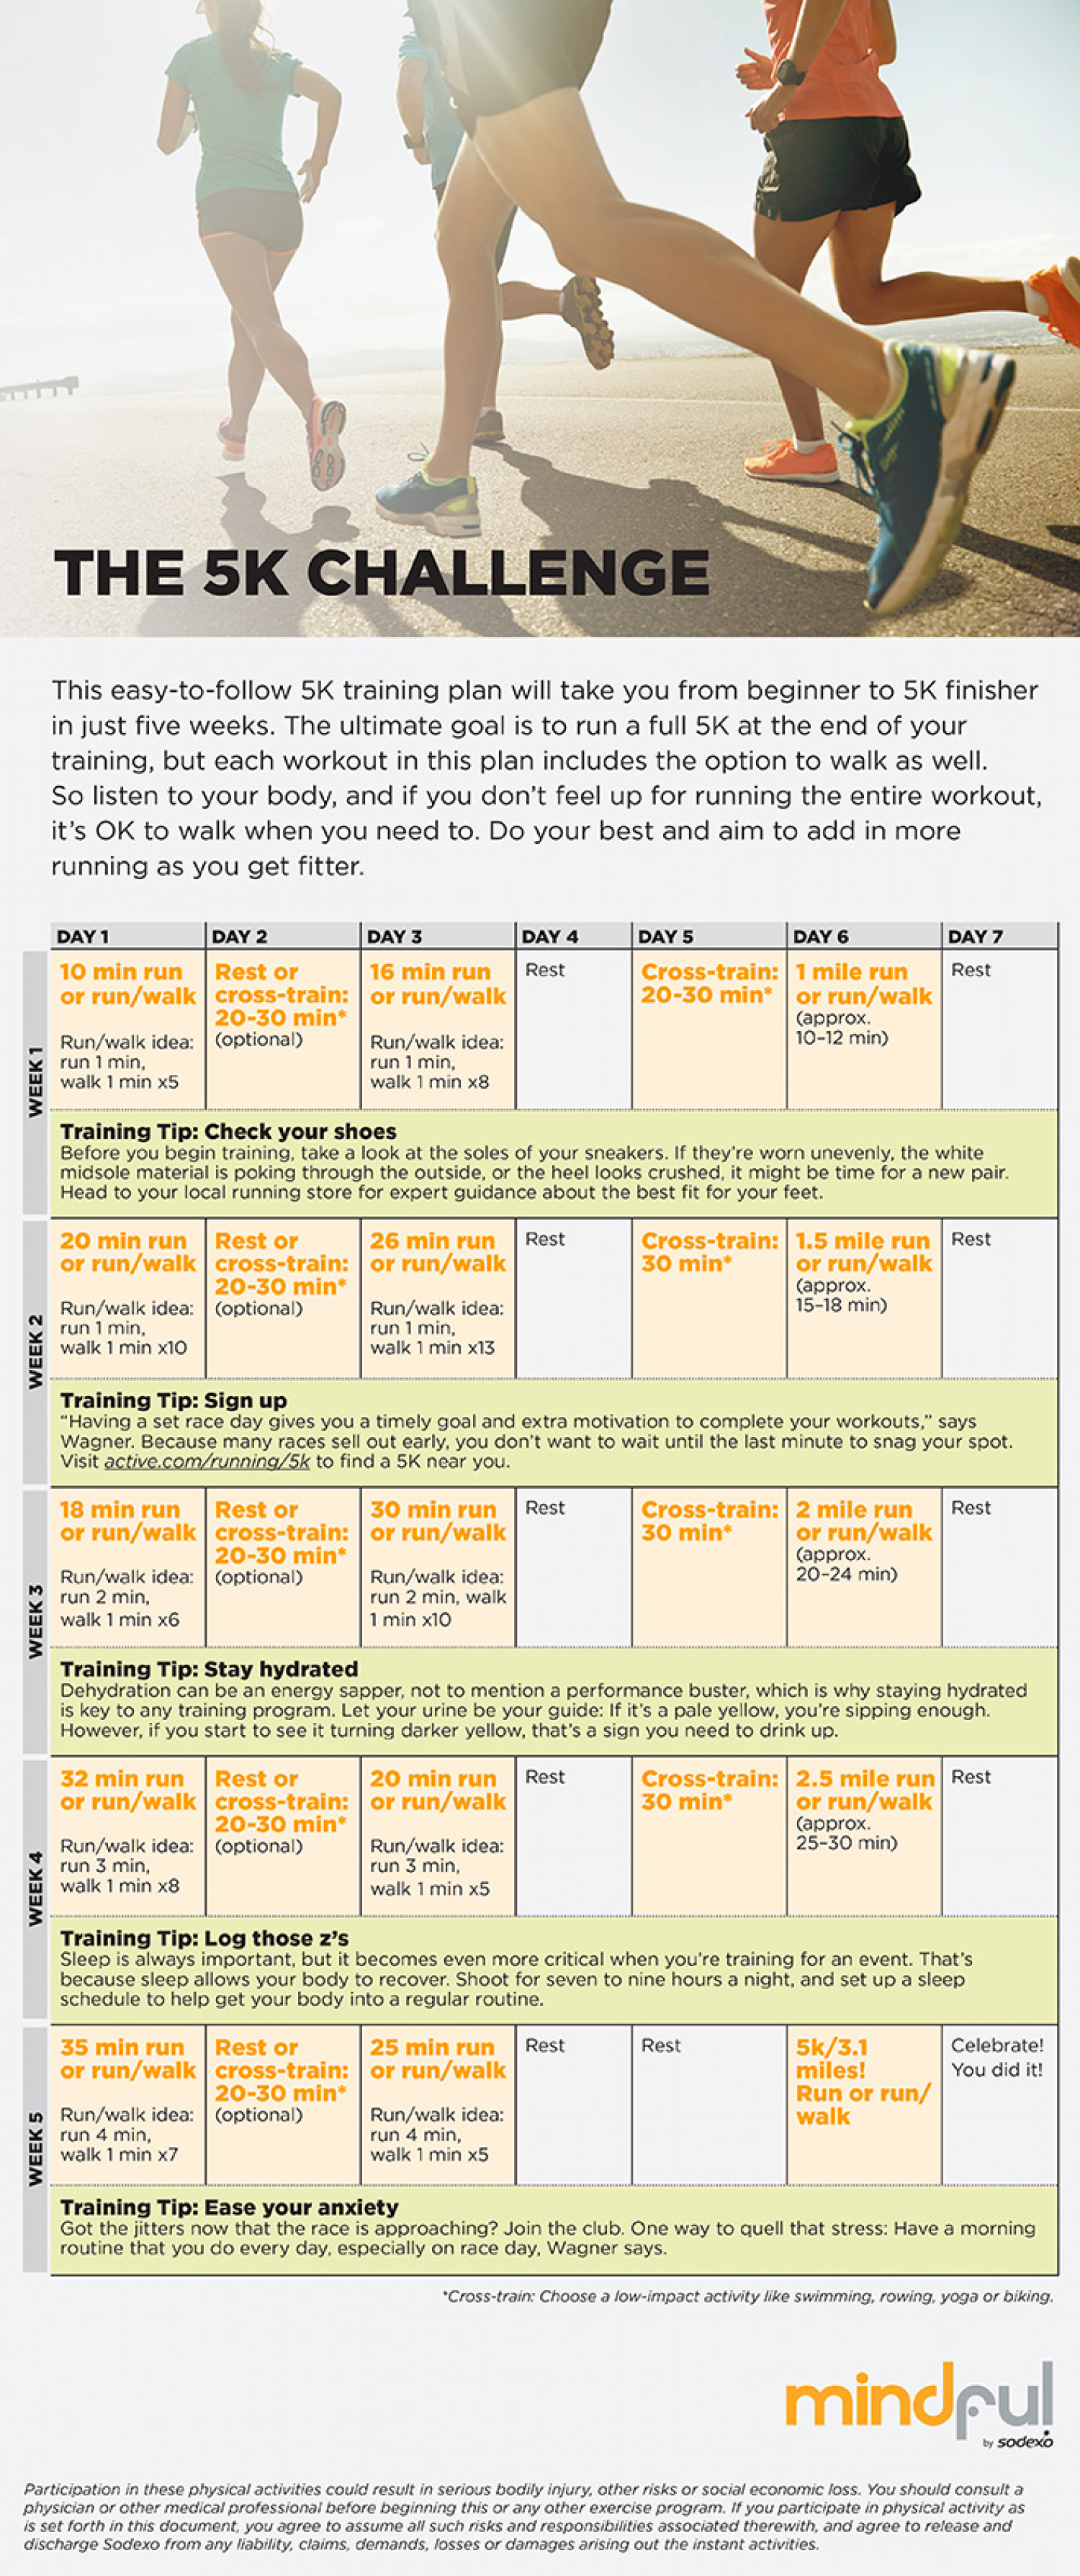 The Mindful 5K Challenge Infographic